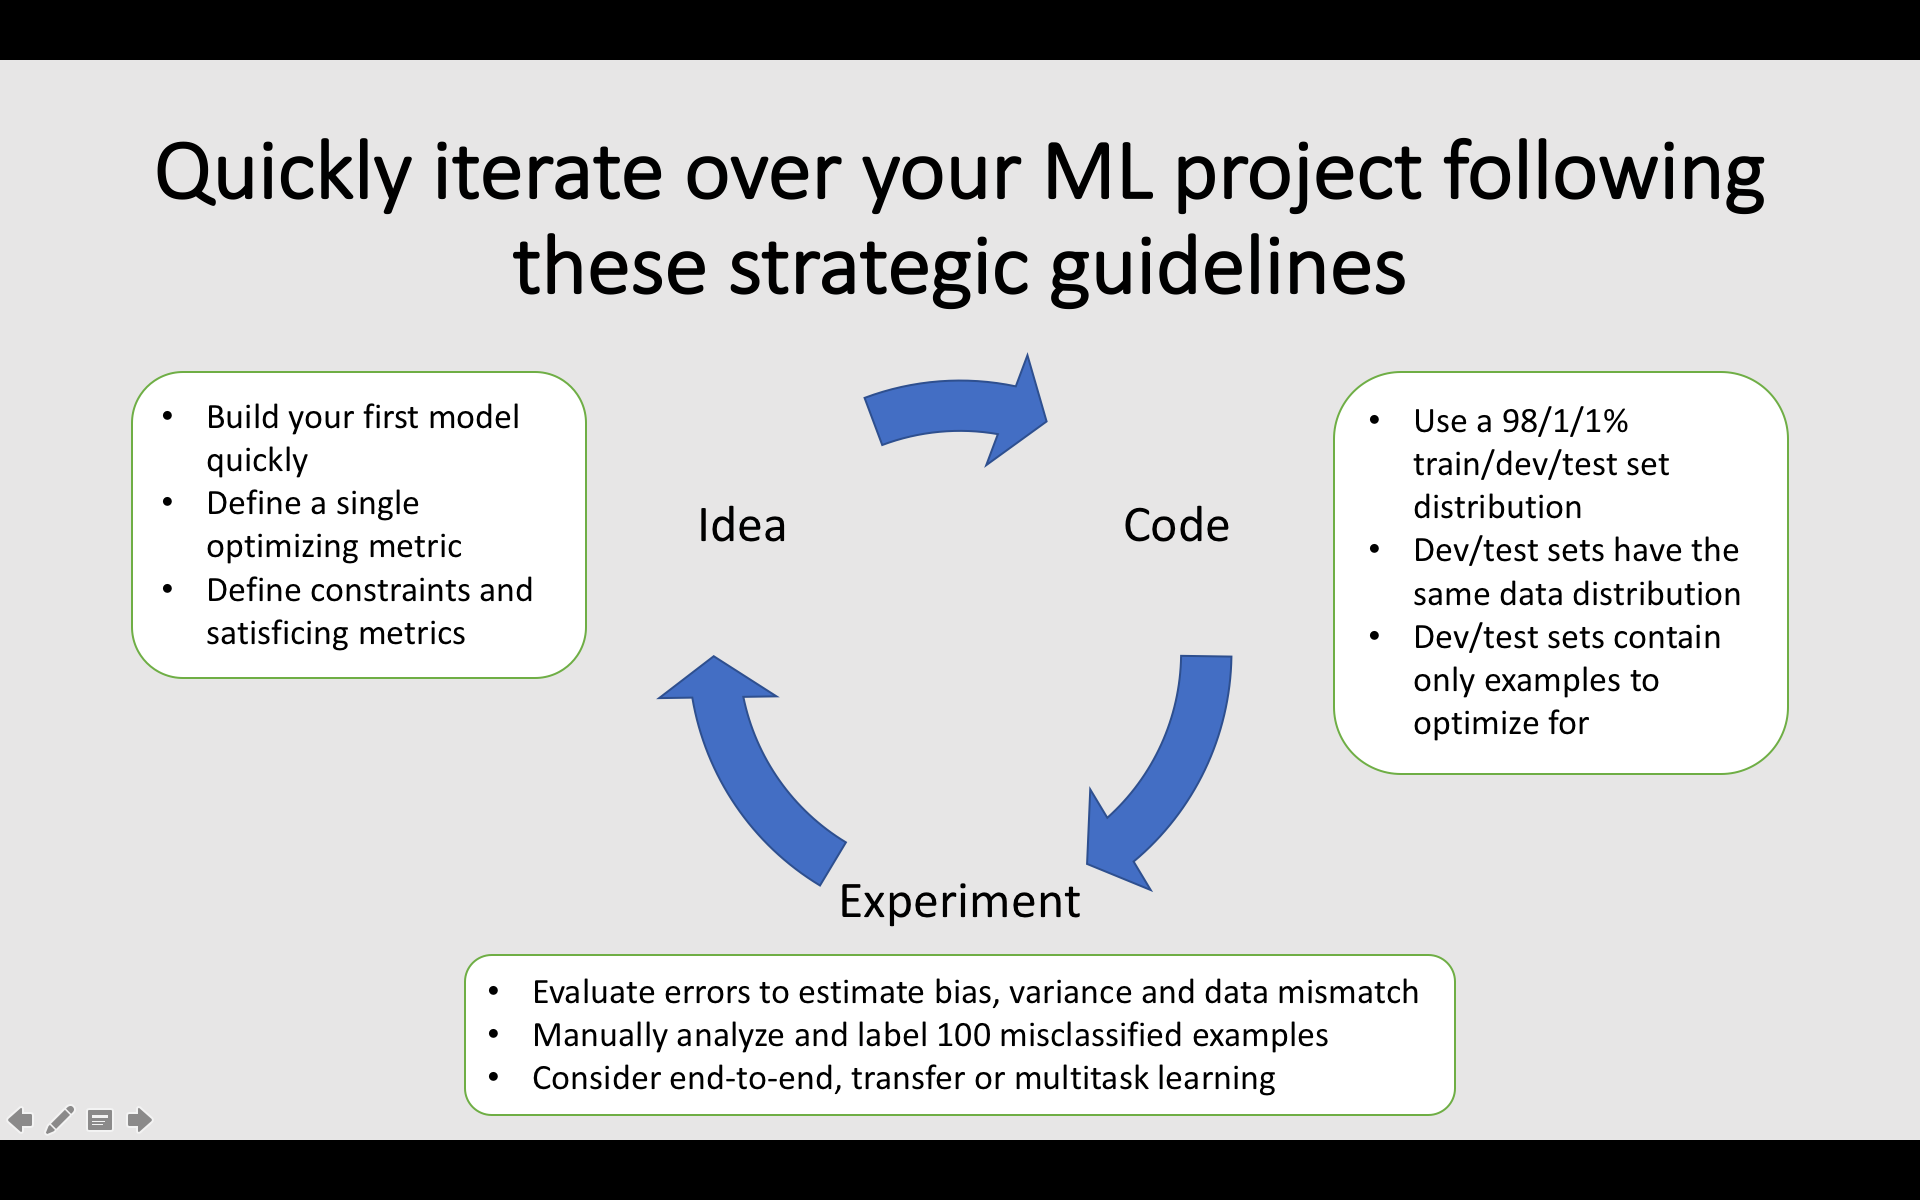 22 nuggets of wisdom to structure your machine learning project